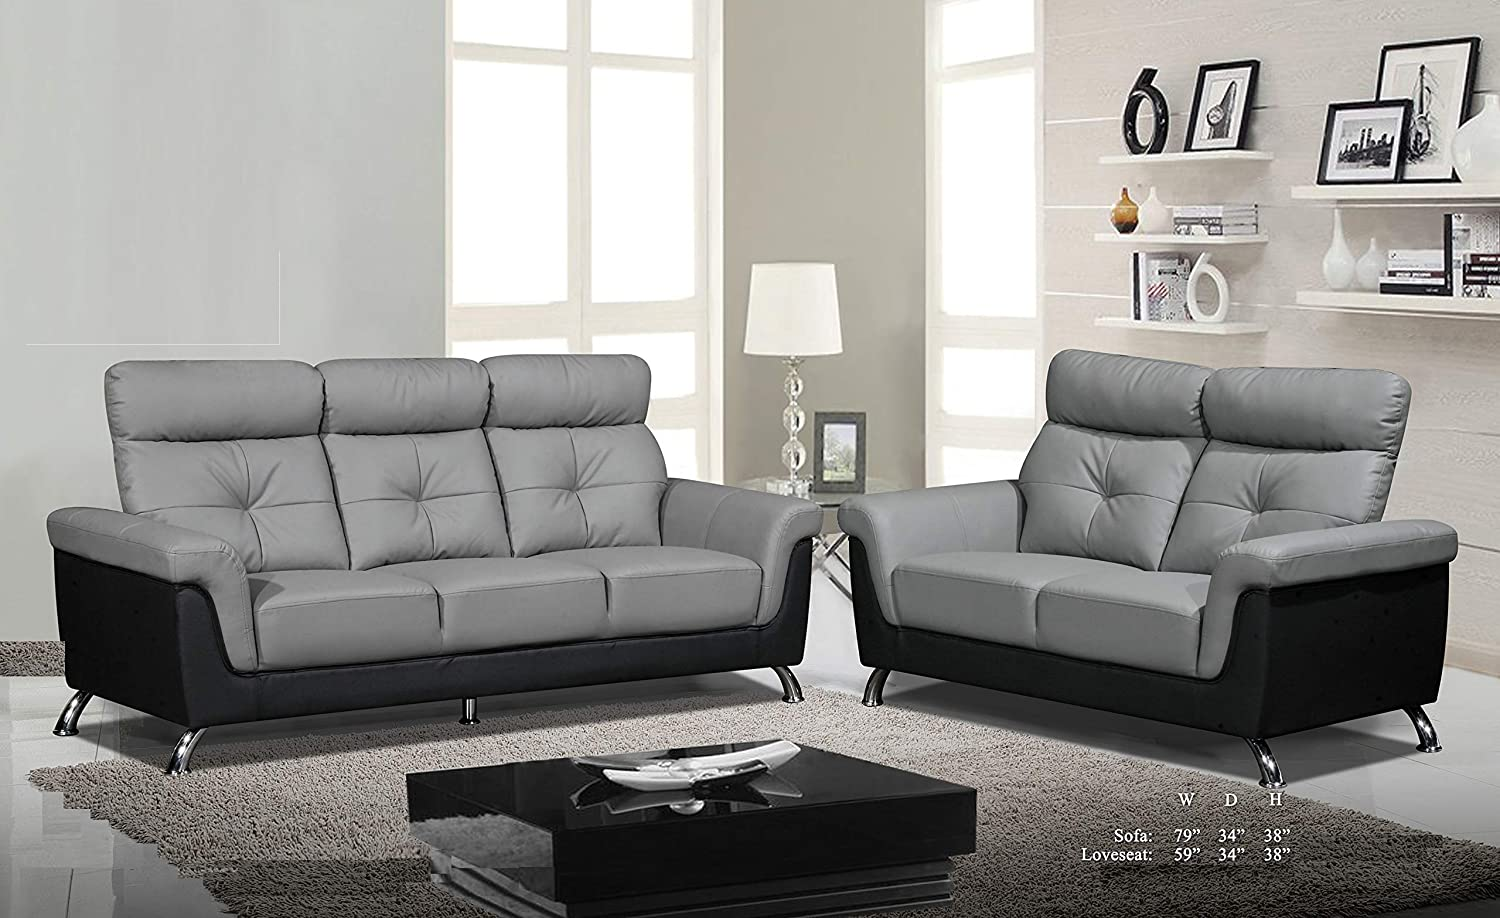 Amazon com esofastore beautiful classic lovely black gray tufted bonded leather sofa and loveseat 2pc sofa set living room furniture kitchen dining